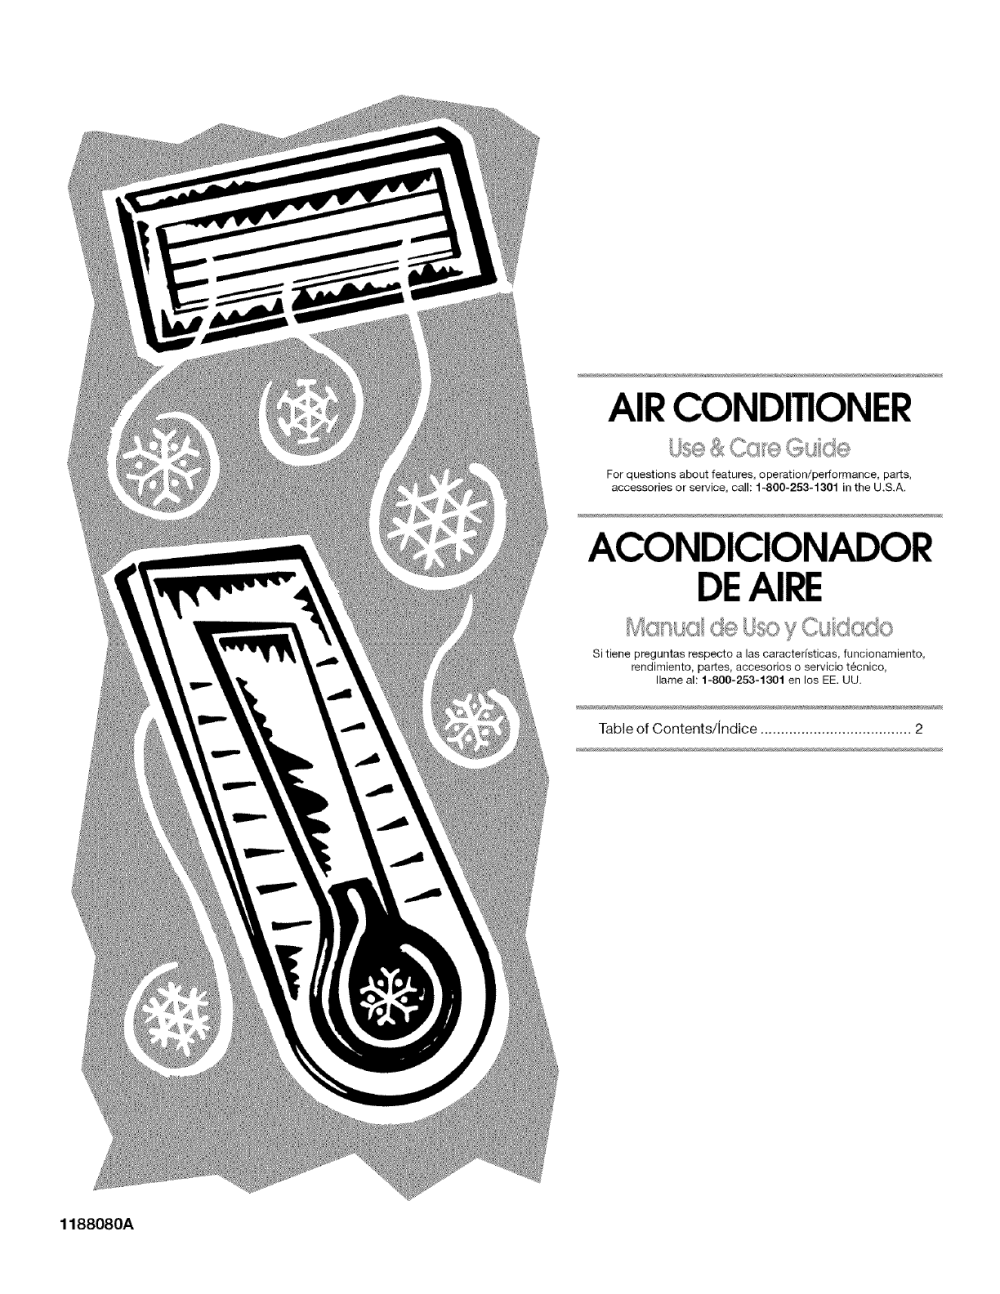 medium resolution of whirlpool ace082xs2 user manual air conditioner manuals and guides l0605404